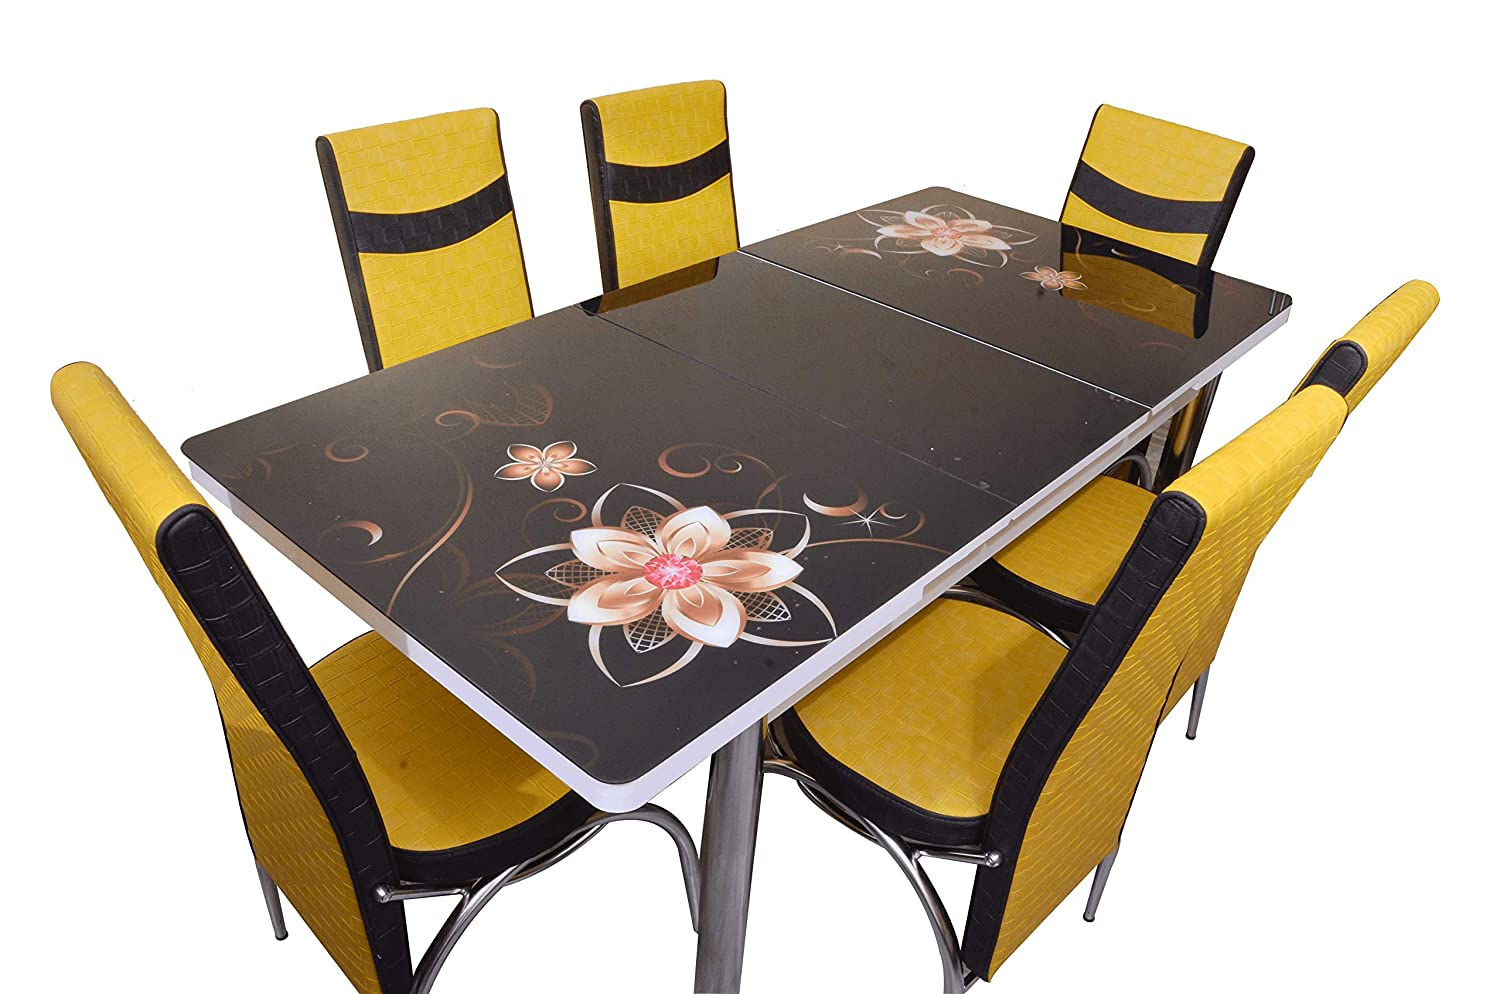 Loyal Furnitures Black Magic 6 Seater Extendable Digital Print Tempered Glass Top Dining Table Set With 6 Chairs Amazon In Home Kitchen